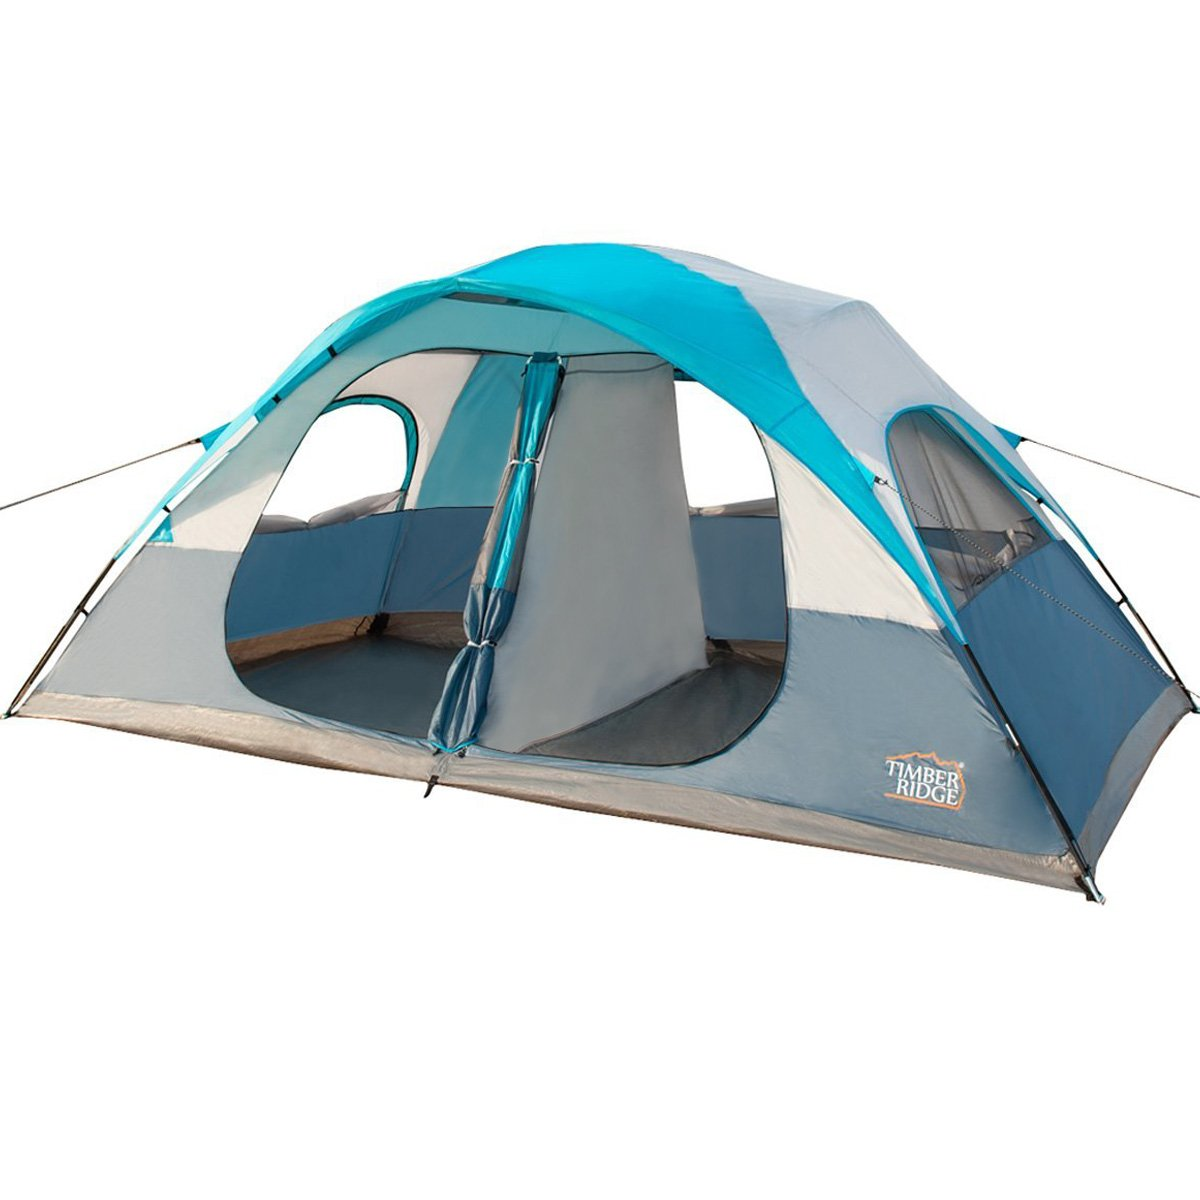 Timber Ridge WF140874TU 9x10x27-Inch 8-Person Tent with Carry Bag, 2 Doors and 2 Rooms, Turquoise by Timber Ridge   B017B9PBOW